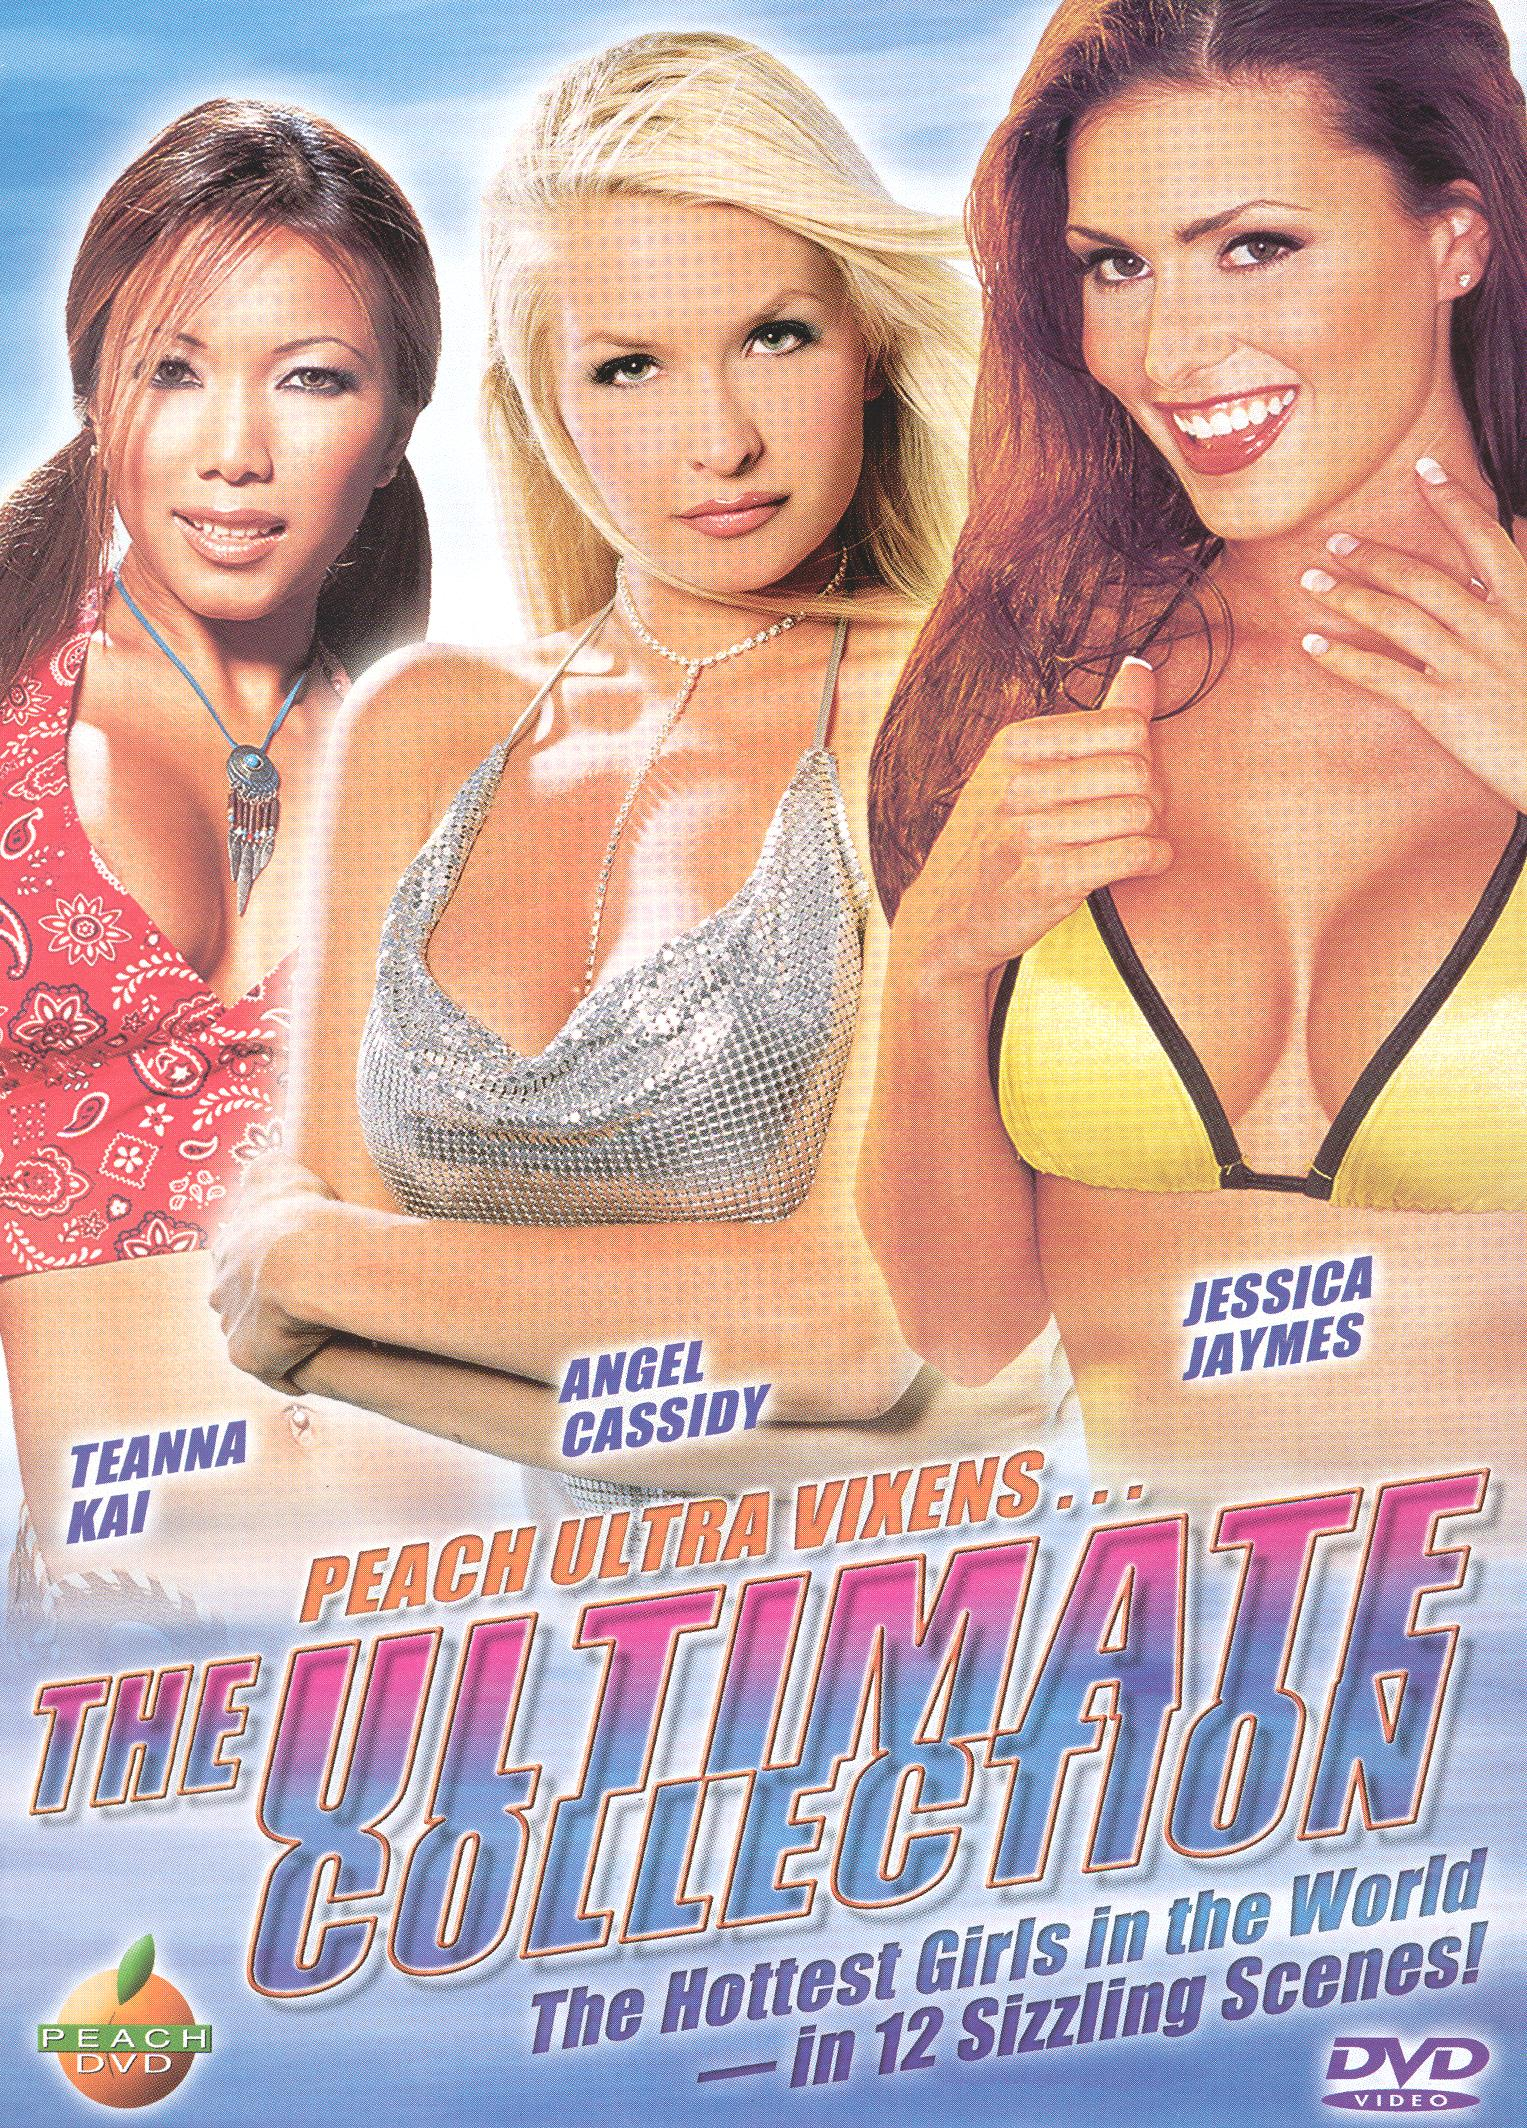 Ultra Vixens: The Ultimate Collection